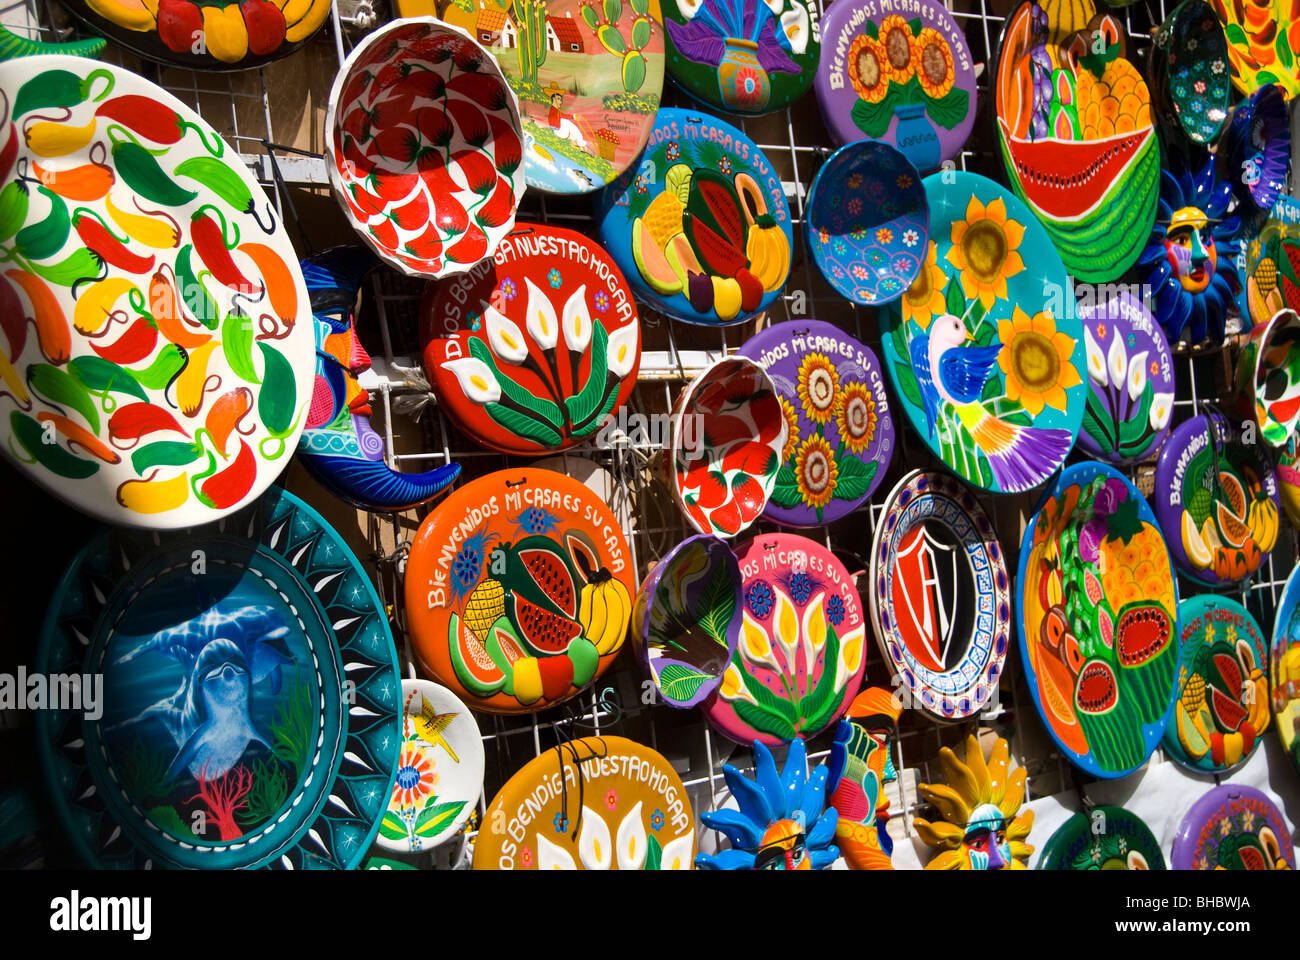 Ceramic plates for sale at the Jardin in Tlaquepaque Mexico & Ceramic plates for sale at the Jardin in Tlaquepaque Mexico Stock ...